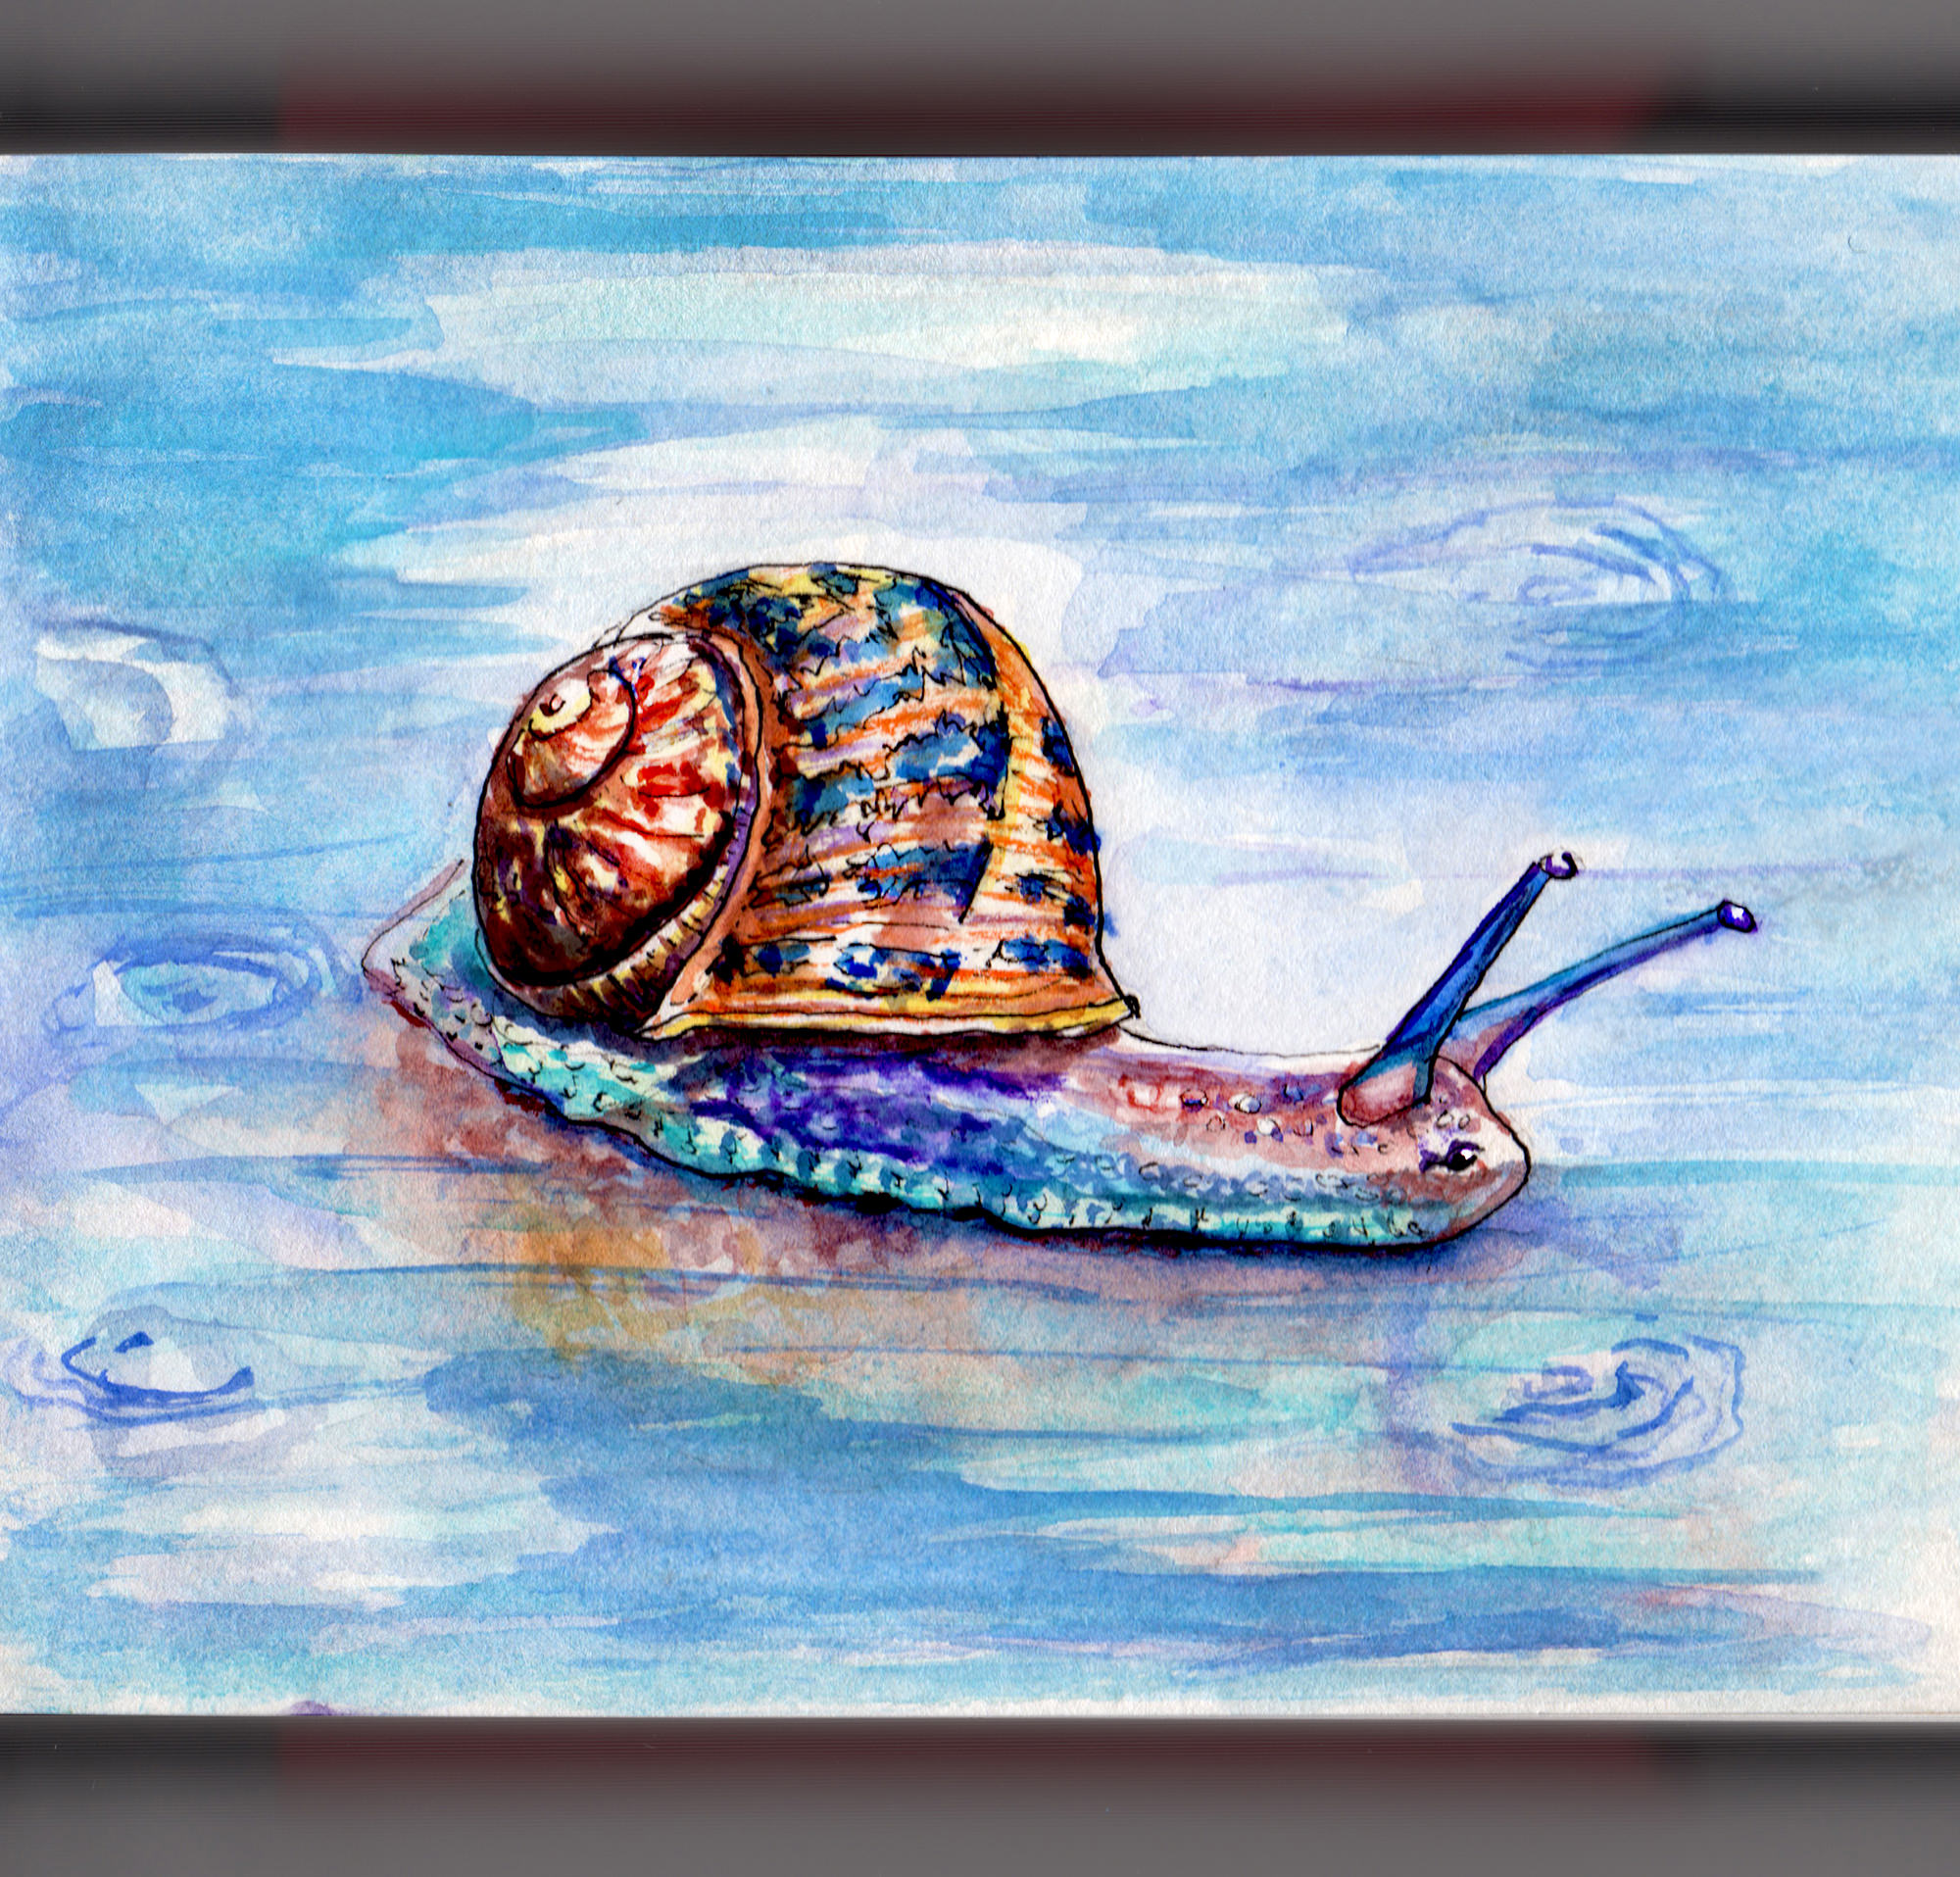 Day 12 - #WorldWatercolorGroup - A Snail In A Puddle of Water watercolor - #doodlewash